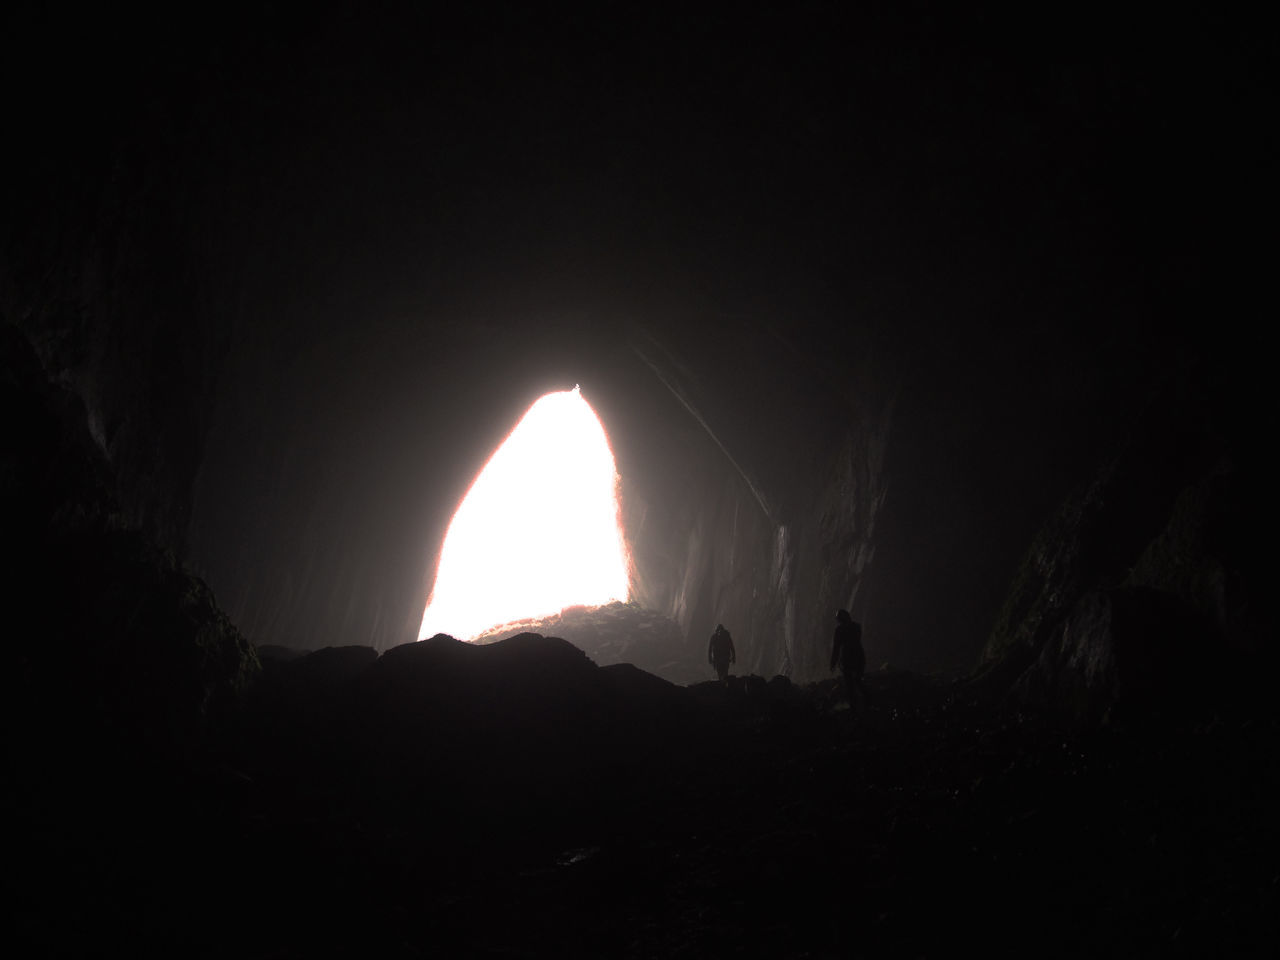 Adventure Back Lit Cave Cavern Caves Caves Photography Caves_collection Cueva Cuevas Dark Espeleología Geology Indoors  Nature Physical Geography Rock Formation Silhouette Sky Speleology Tourism Tourist Tranquil Scene Tranquility Travel Destinations Vacations